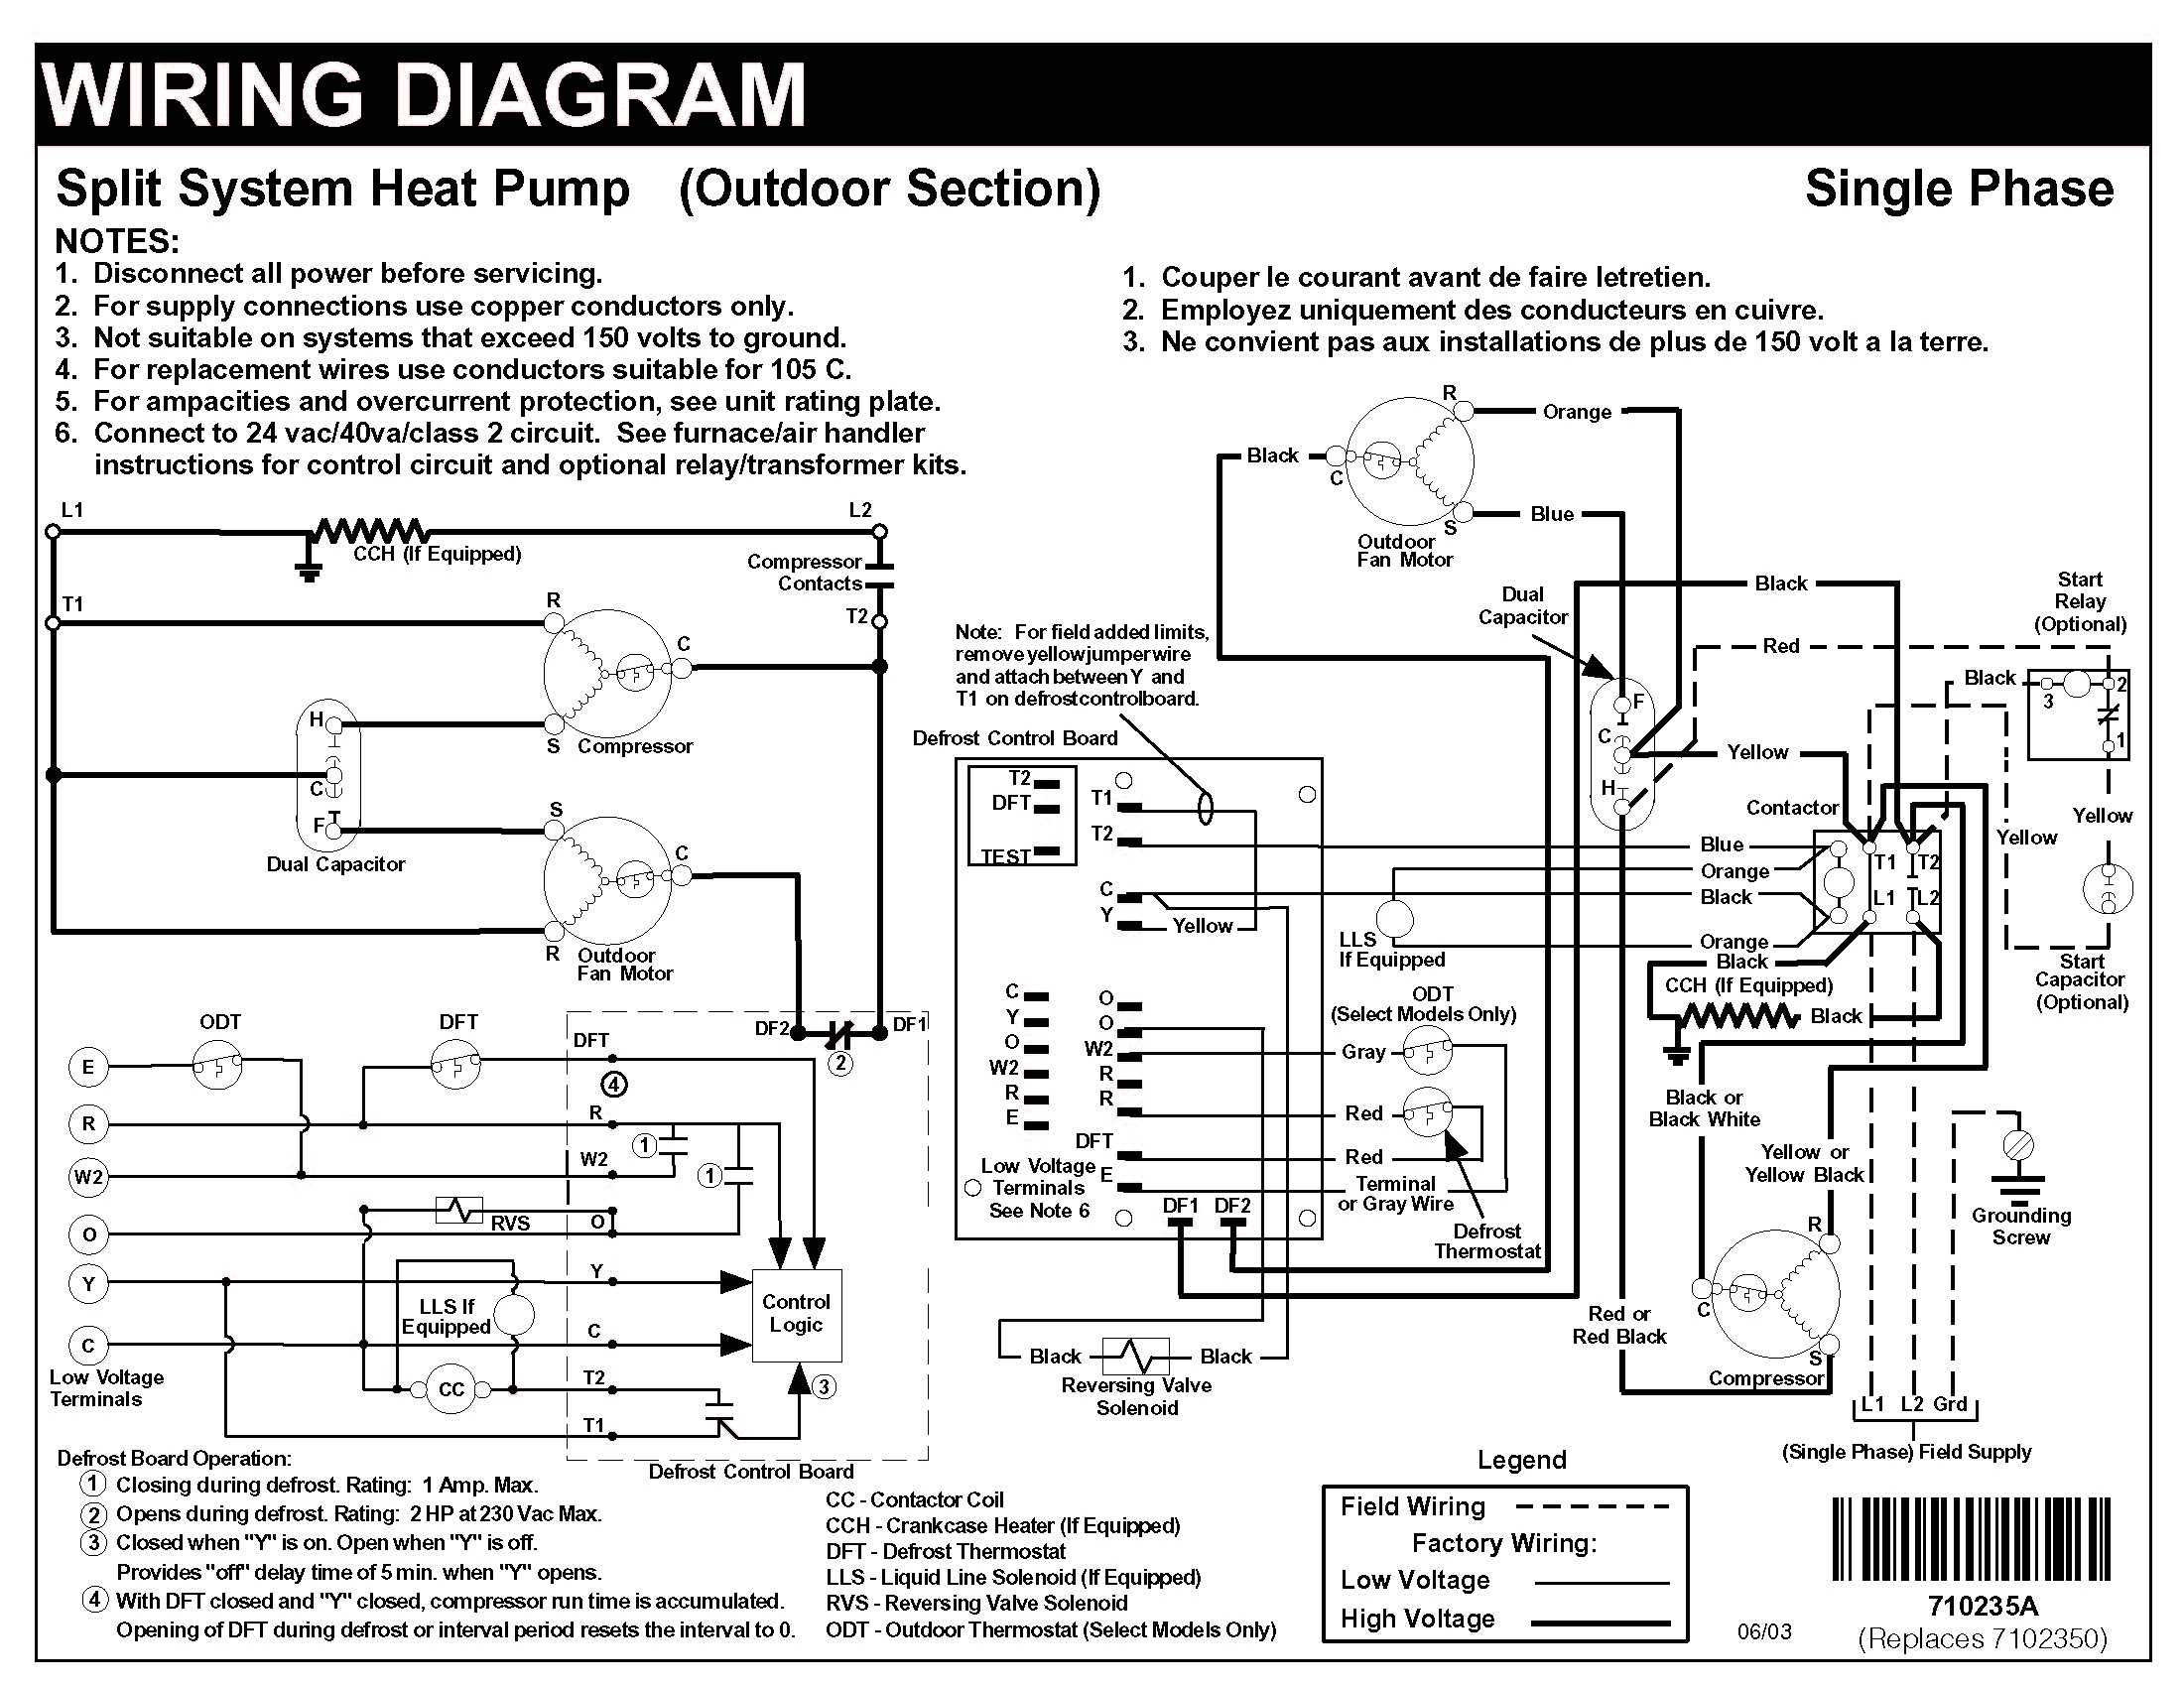 nordyne ac wiring diagram Collection-Nordyne Ac Wiring Diagram Fresh Heat Pump Air Conditioner nordyne Heat Pump thermostat Wiring 13-k